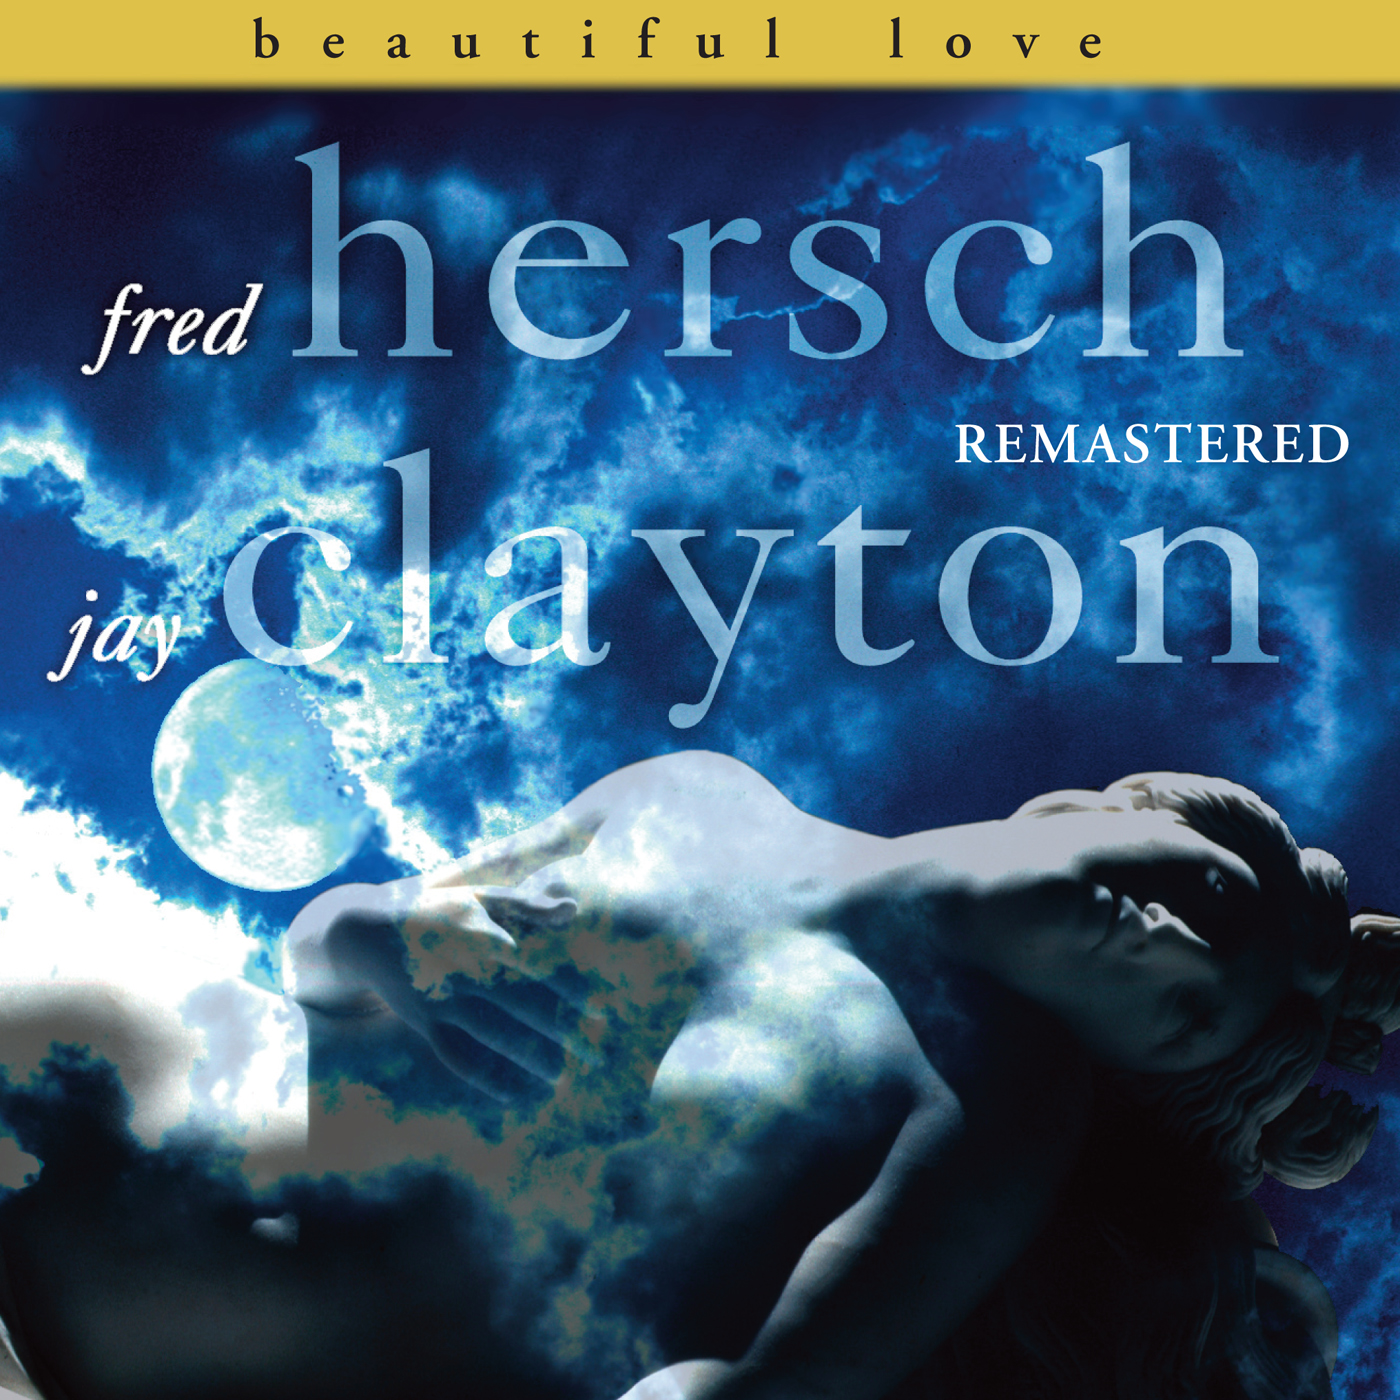 Beautiful Love (Remastered)  by Fred  Hersch cover